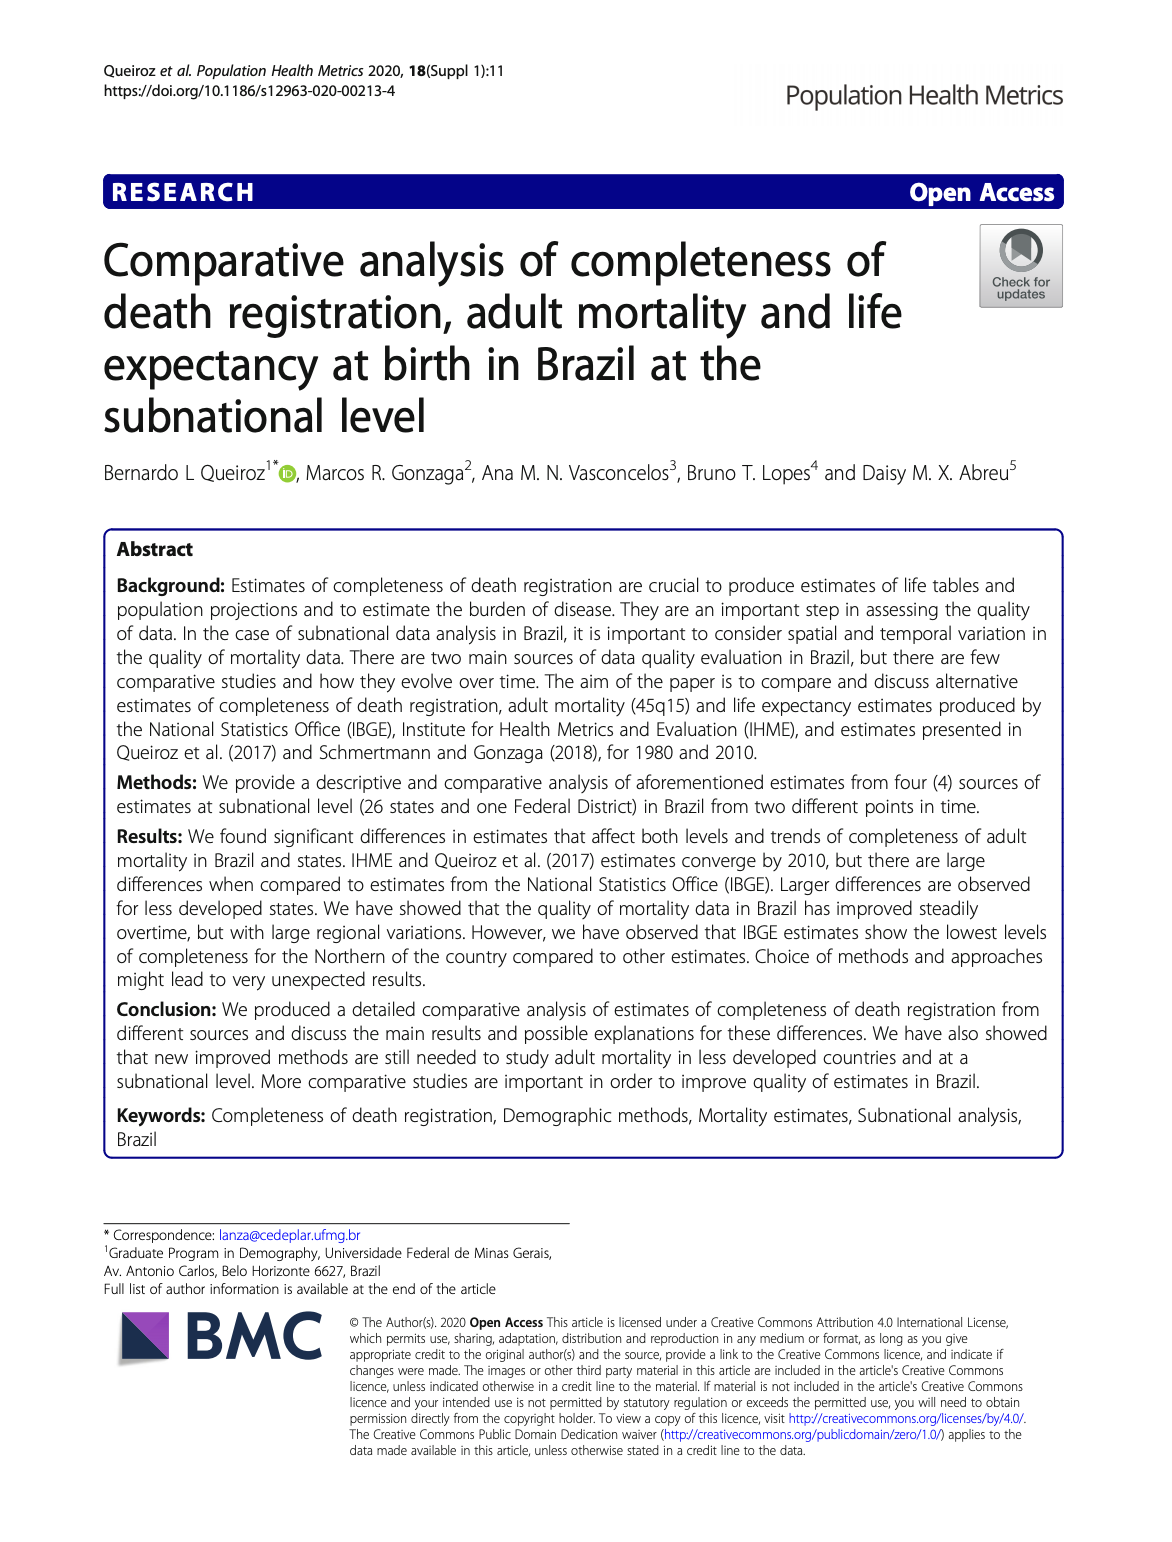 Comparative analysis of completeness of